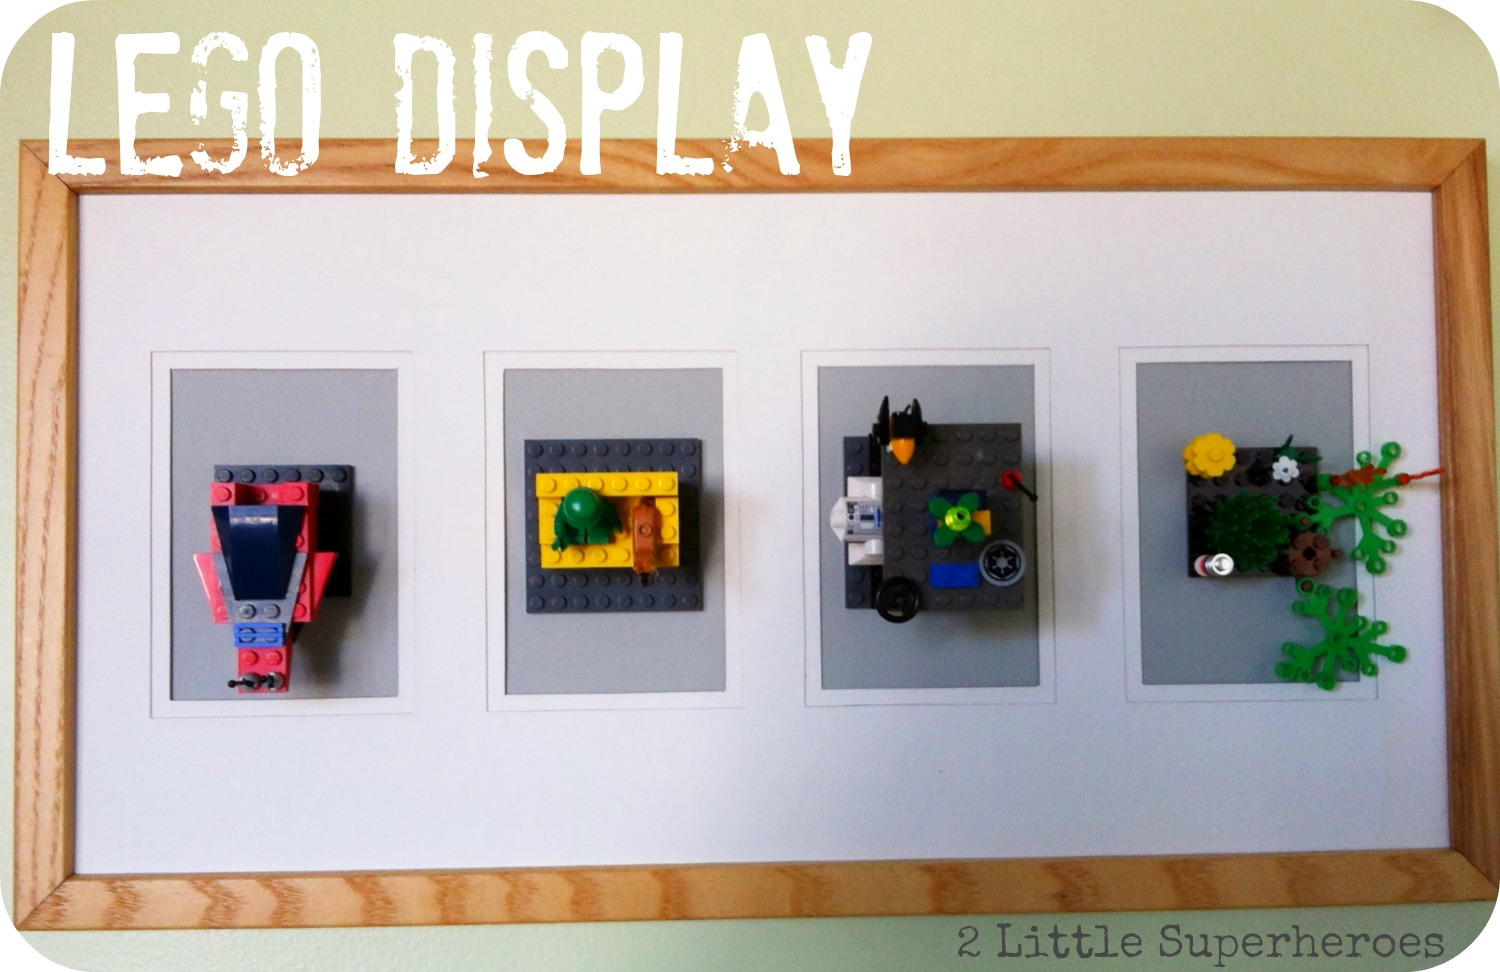 legodisplay1 Lego Art Display